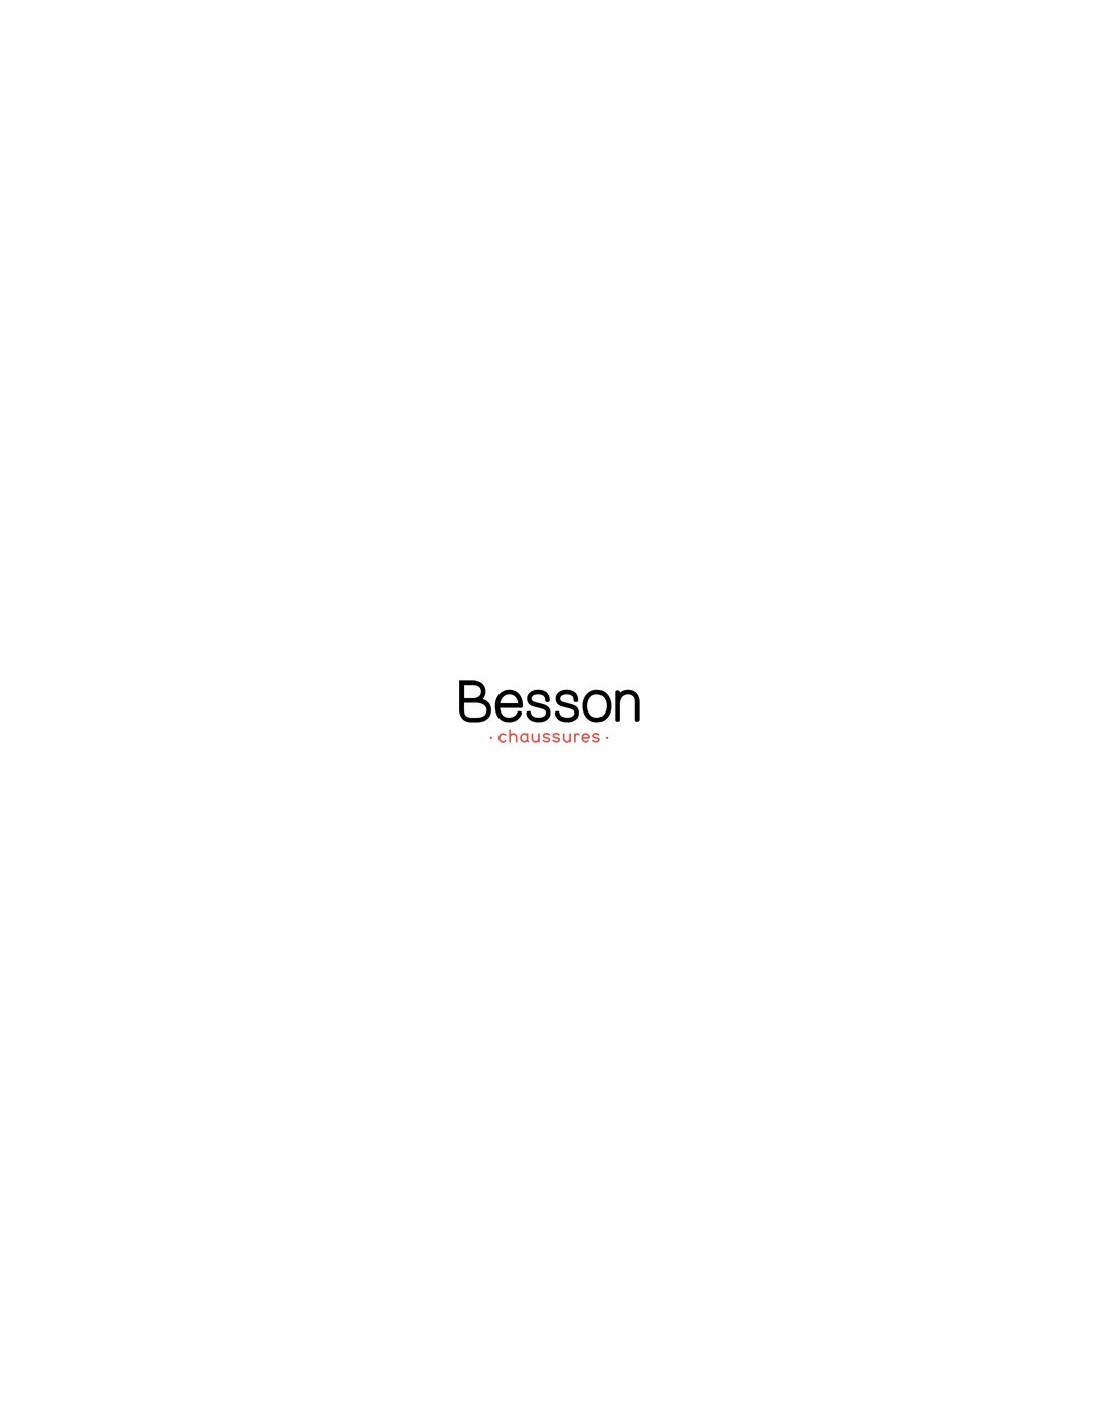 Besson Besson Carte Besson Chaussures Carte 3a Chaussures Carte Chaussures 3a PXkiuZO